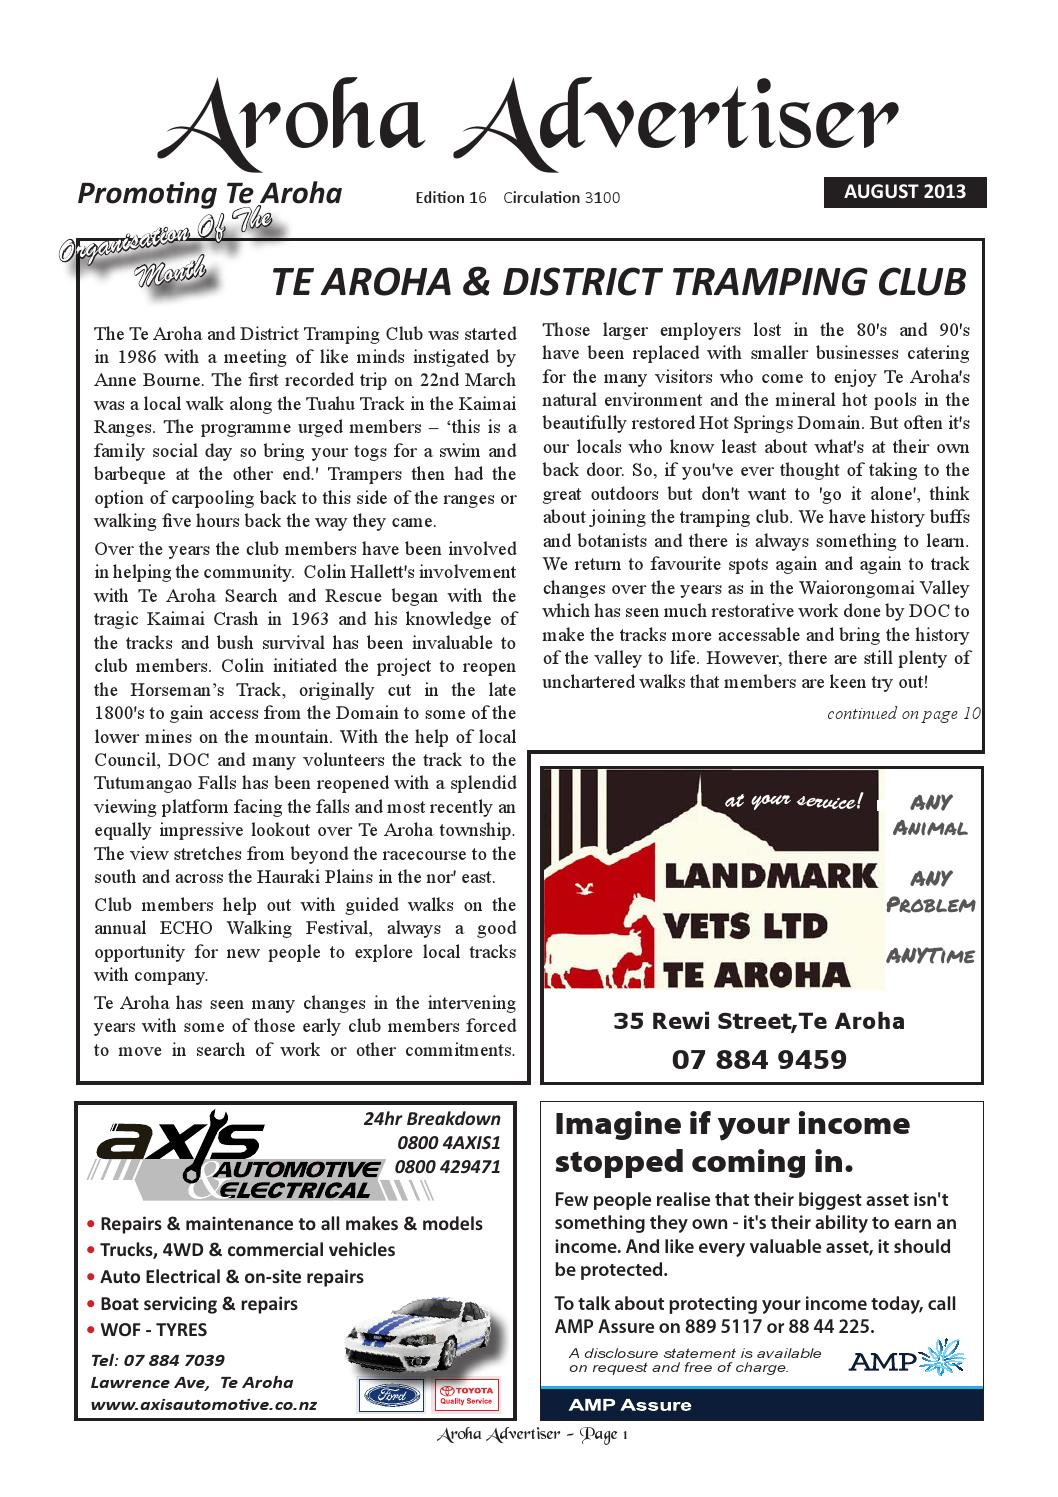 Te aroha advertiser august 2013 by steven gregg issuu for Aroha new zealand cuisine menu